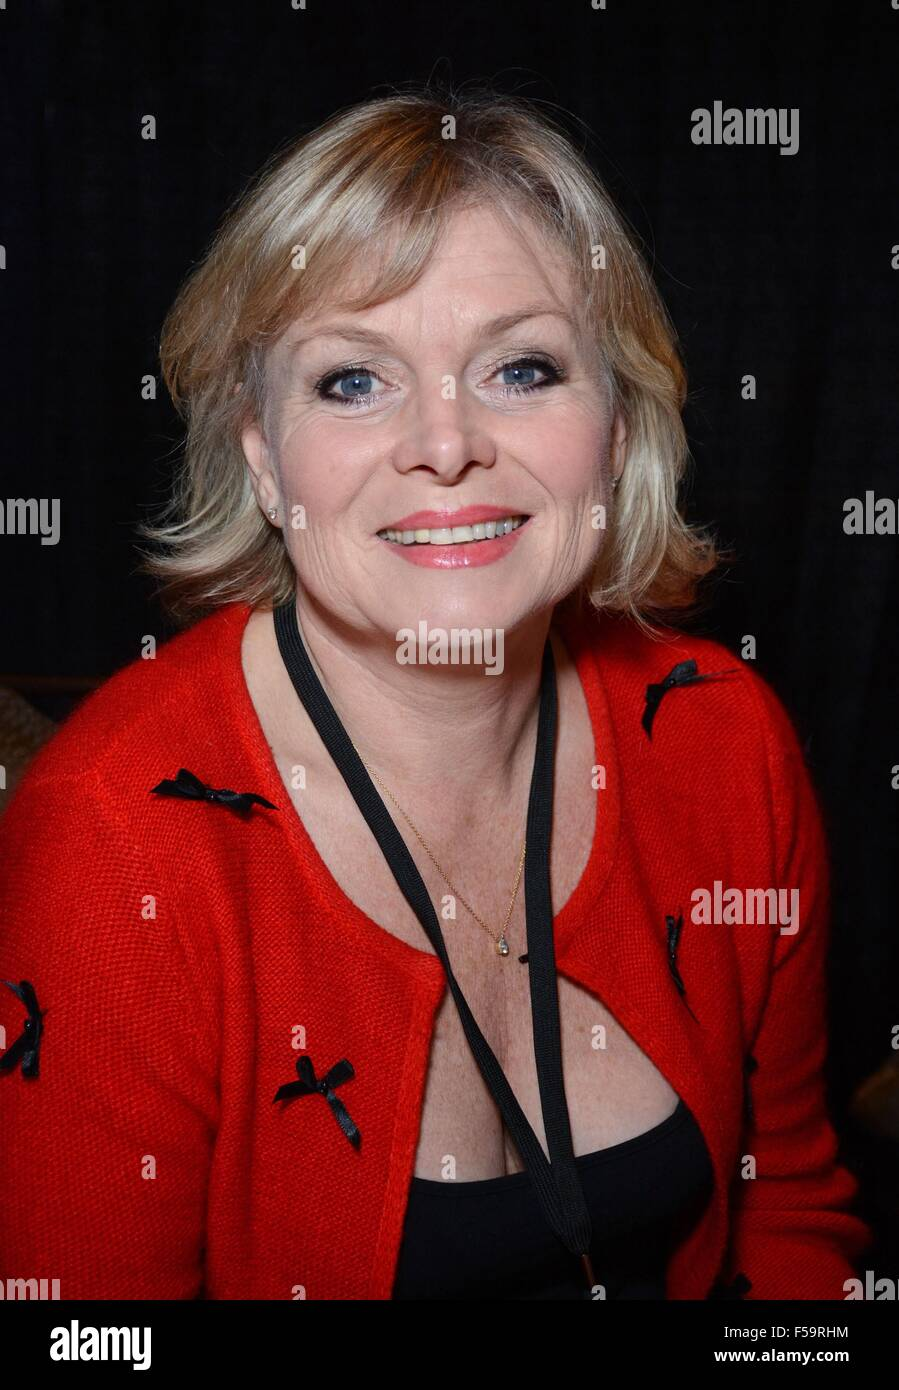 Julie Dawn Cole nudes (17 photo) Gallery, 2018, cameltoe